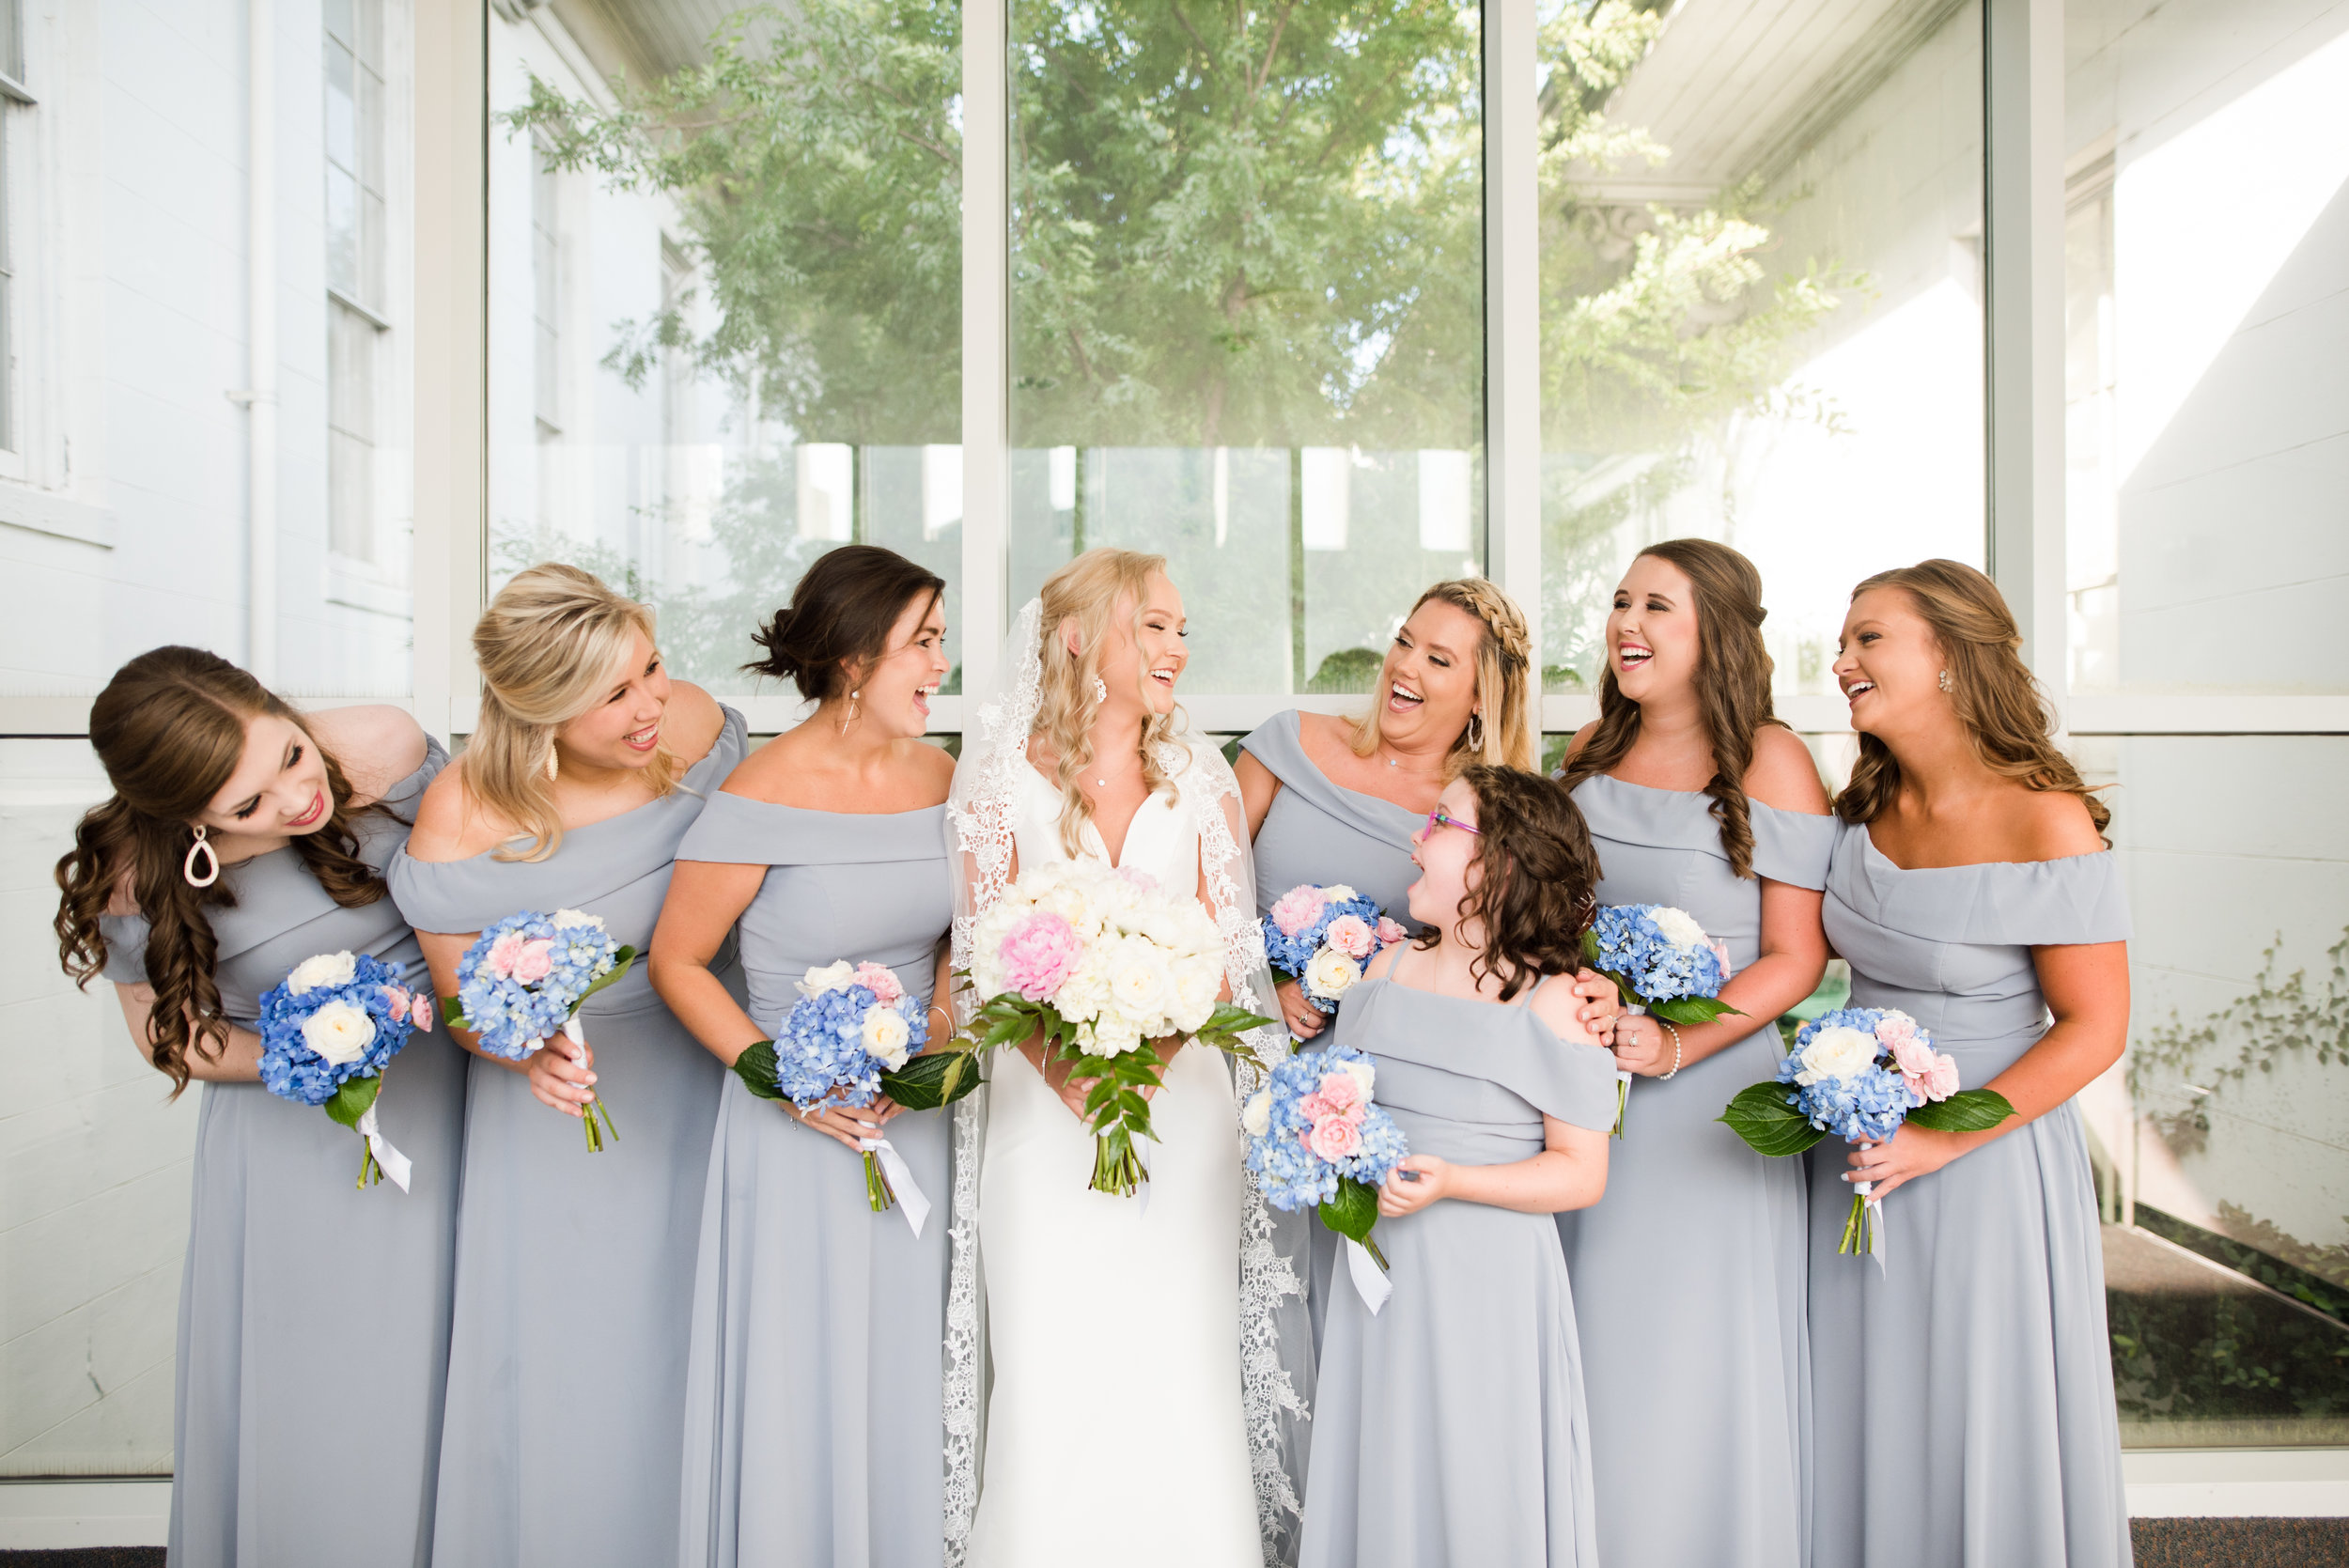 DSC_0858.jpgHistory museum of mobile, alabama wedding bridesmaids shot by kristen marcus photography in June